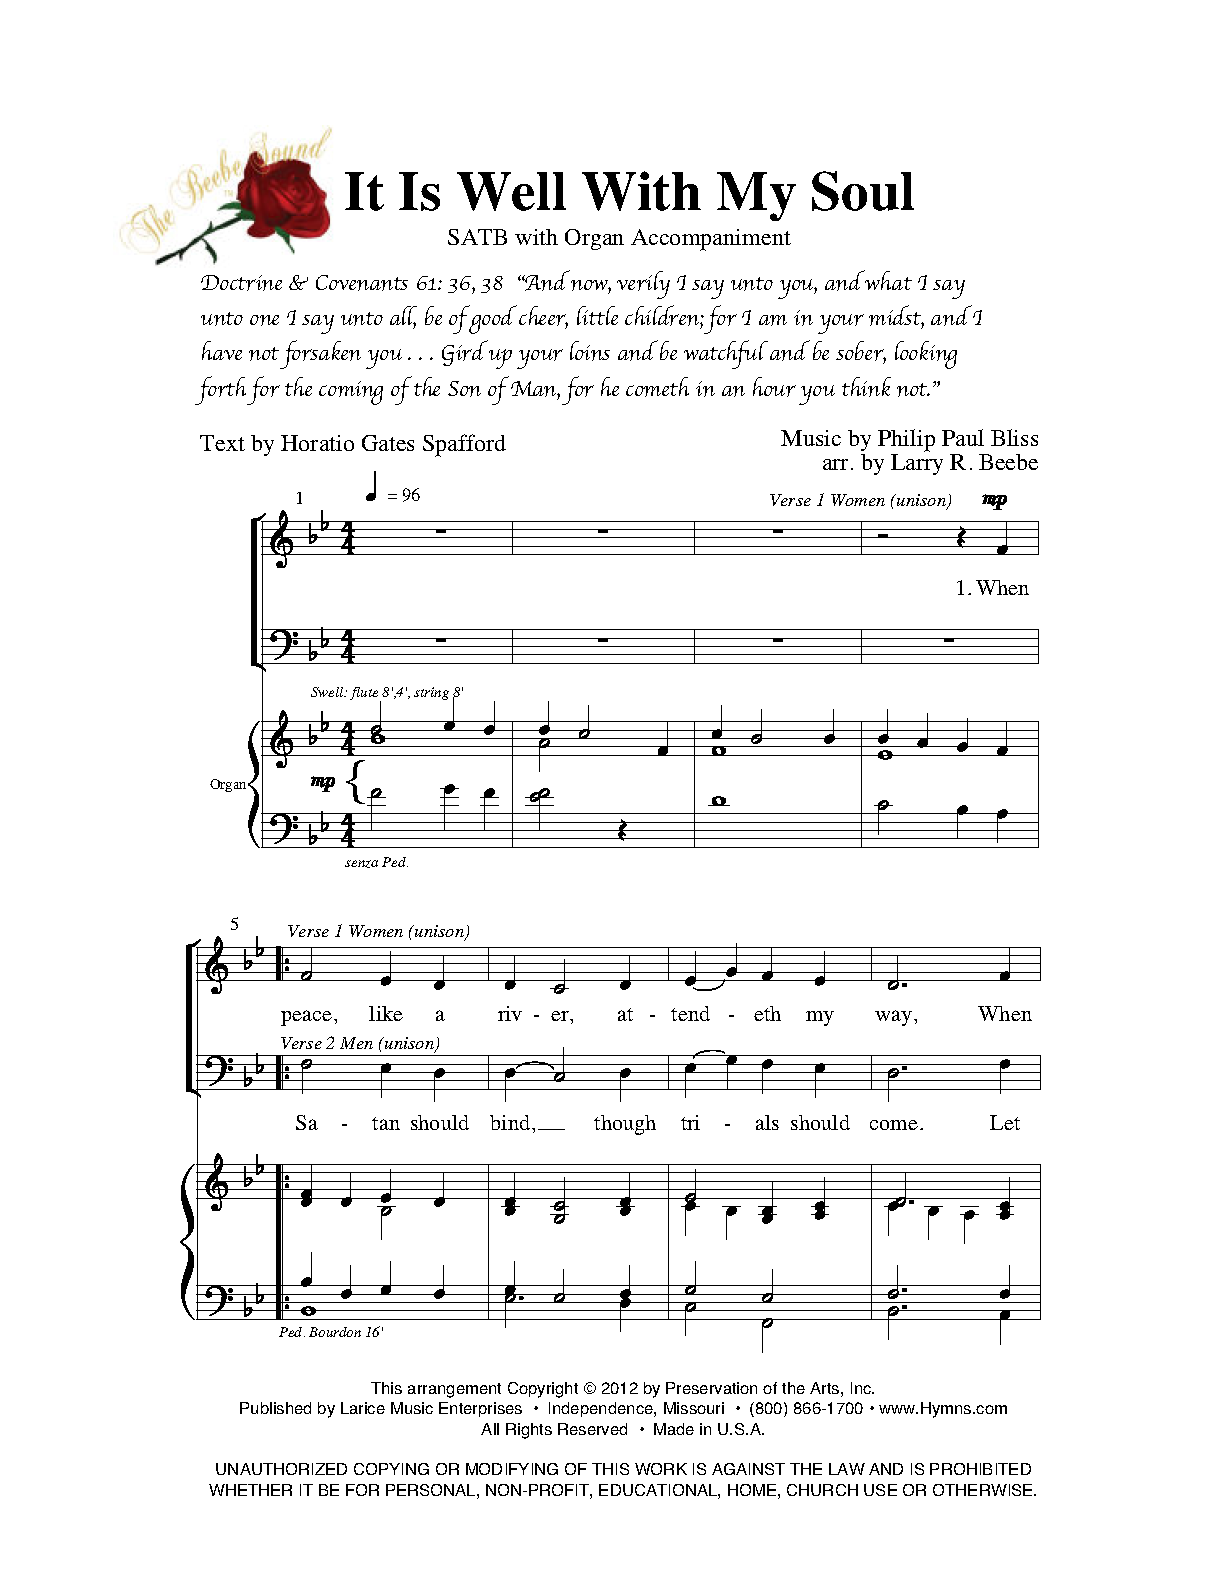 It Is Well with My Soul/SATB